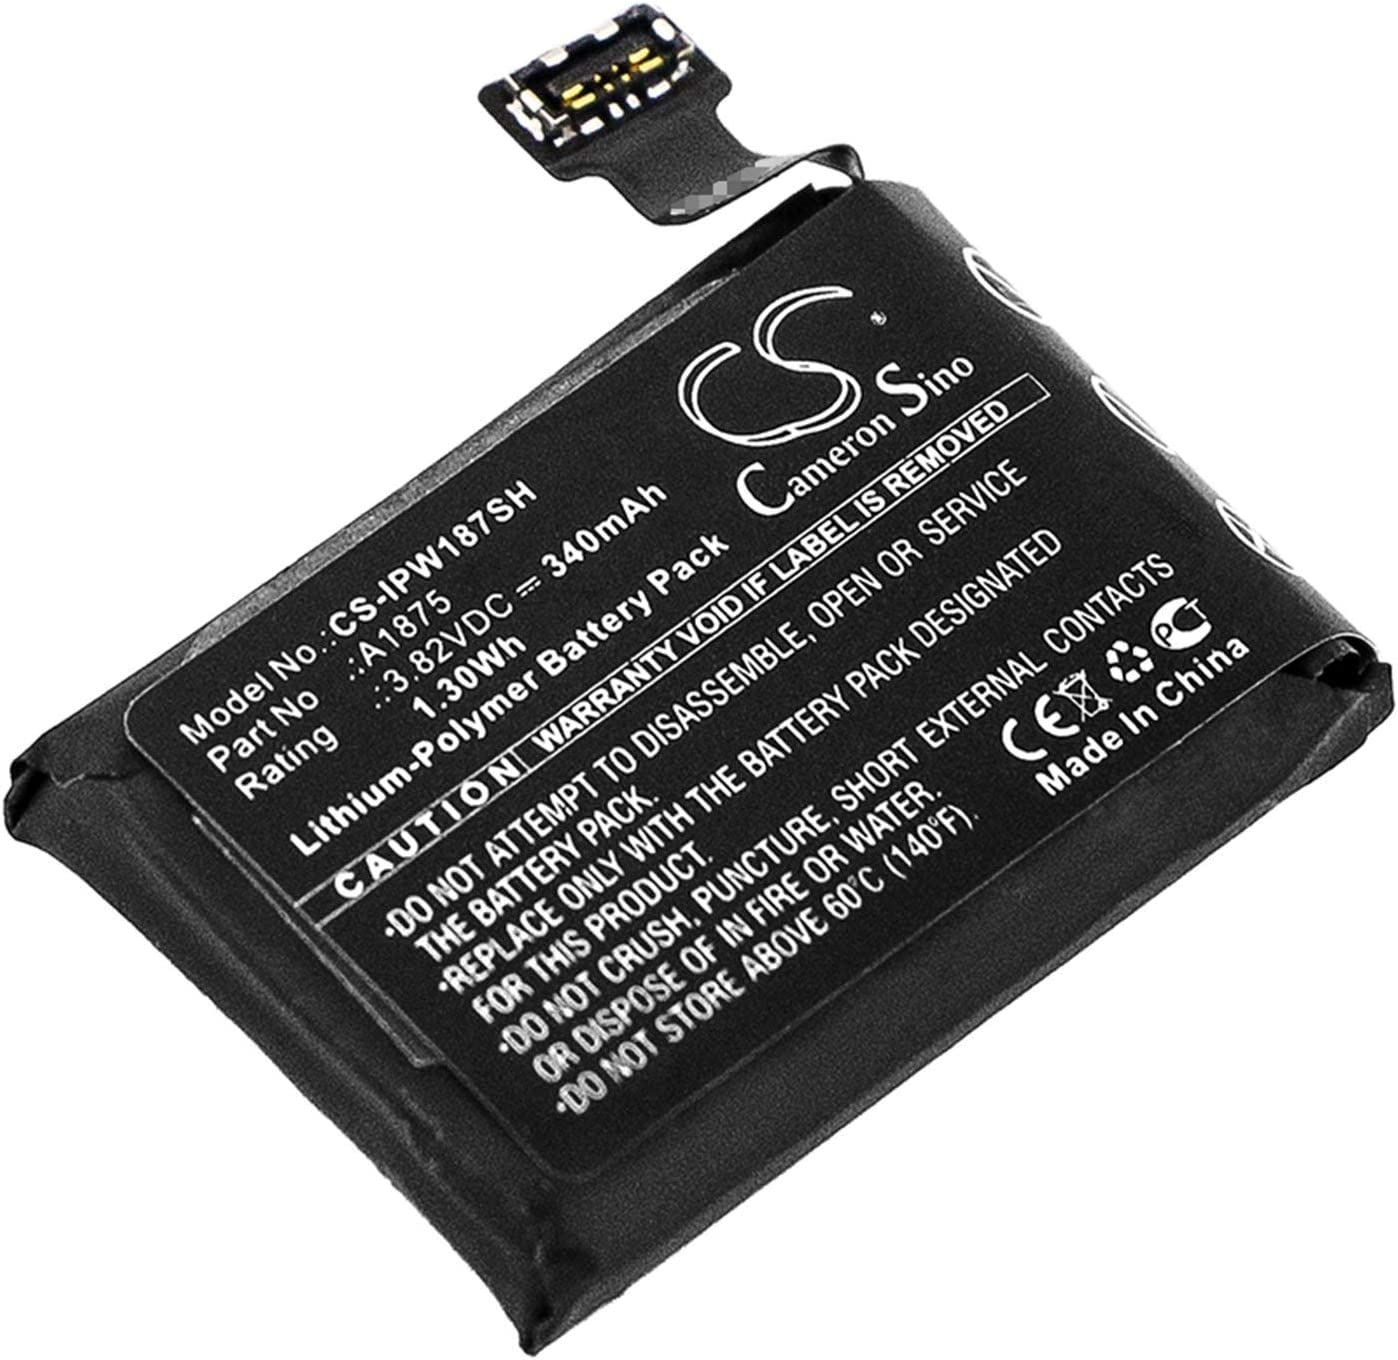 VINTRONS Battery Replacement Compatible for Apple A1861, Watch Series 3 42mm, Watch Series 3 GPS 42mm,